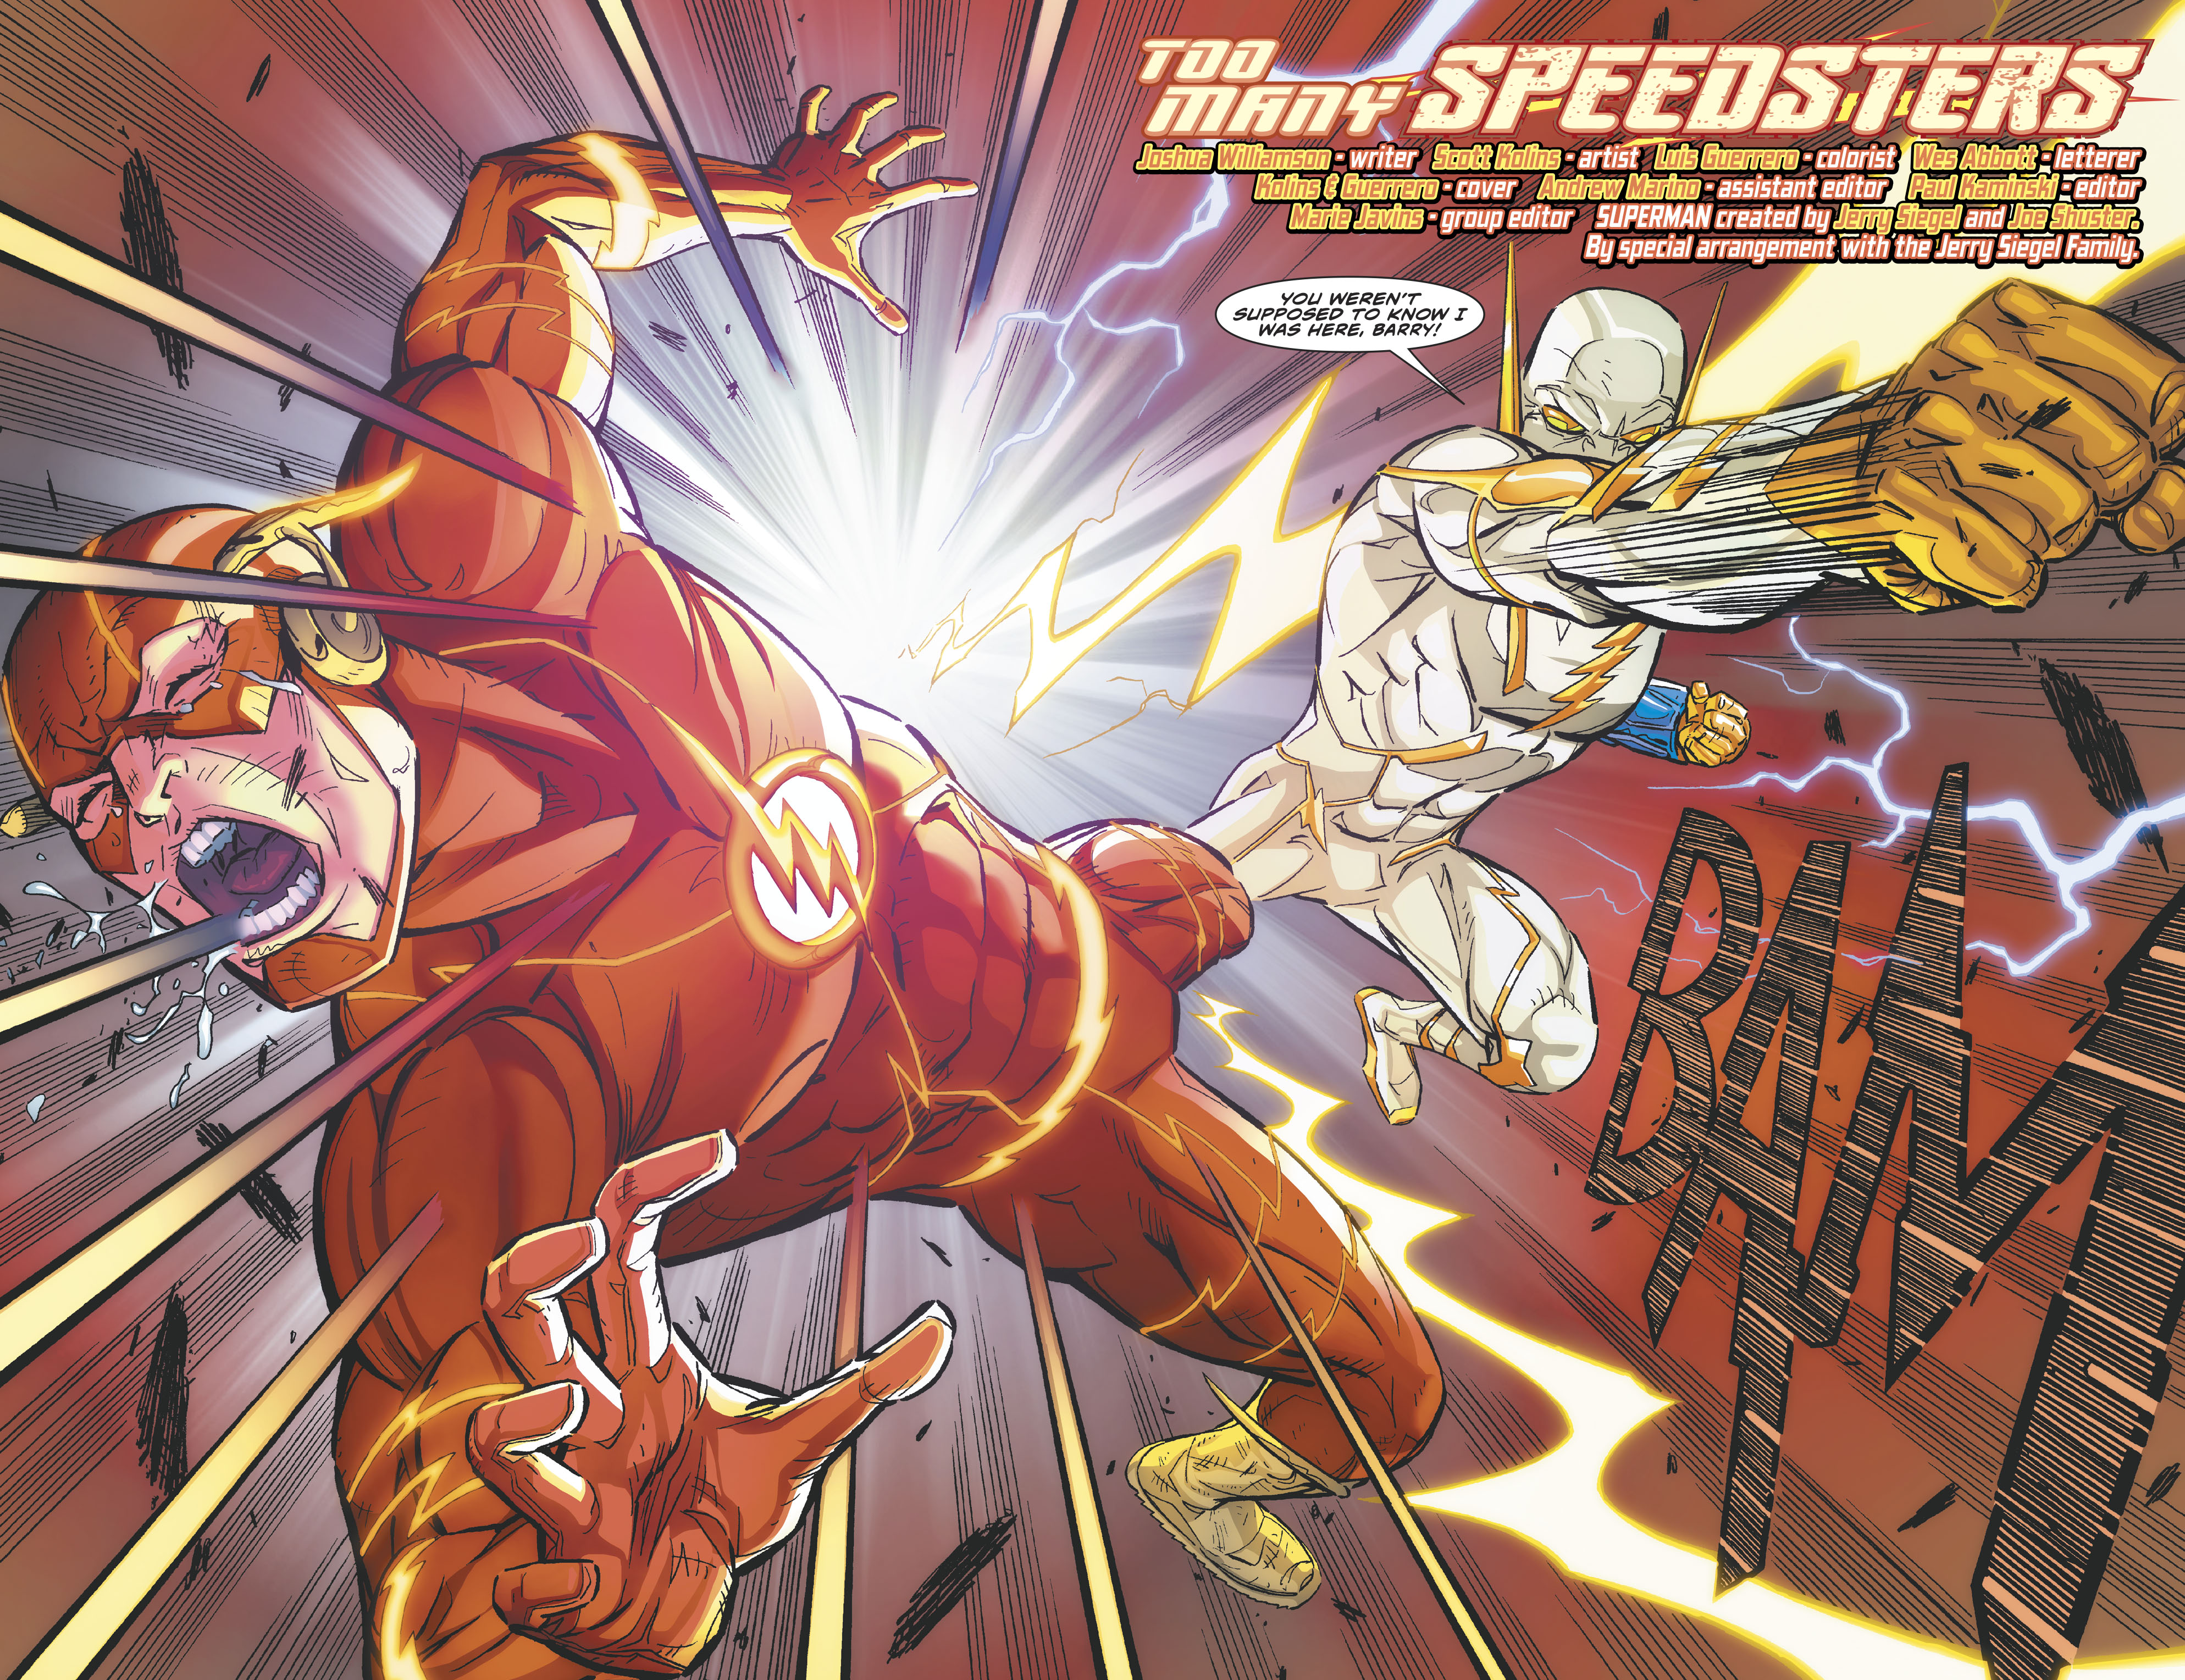 DC Comics Universe & The Flash Annual #2 Spoilers: Heroes In